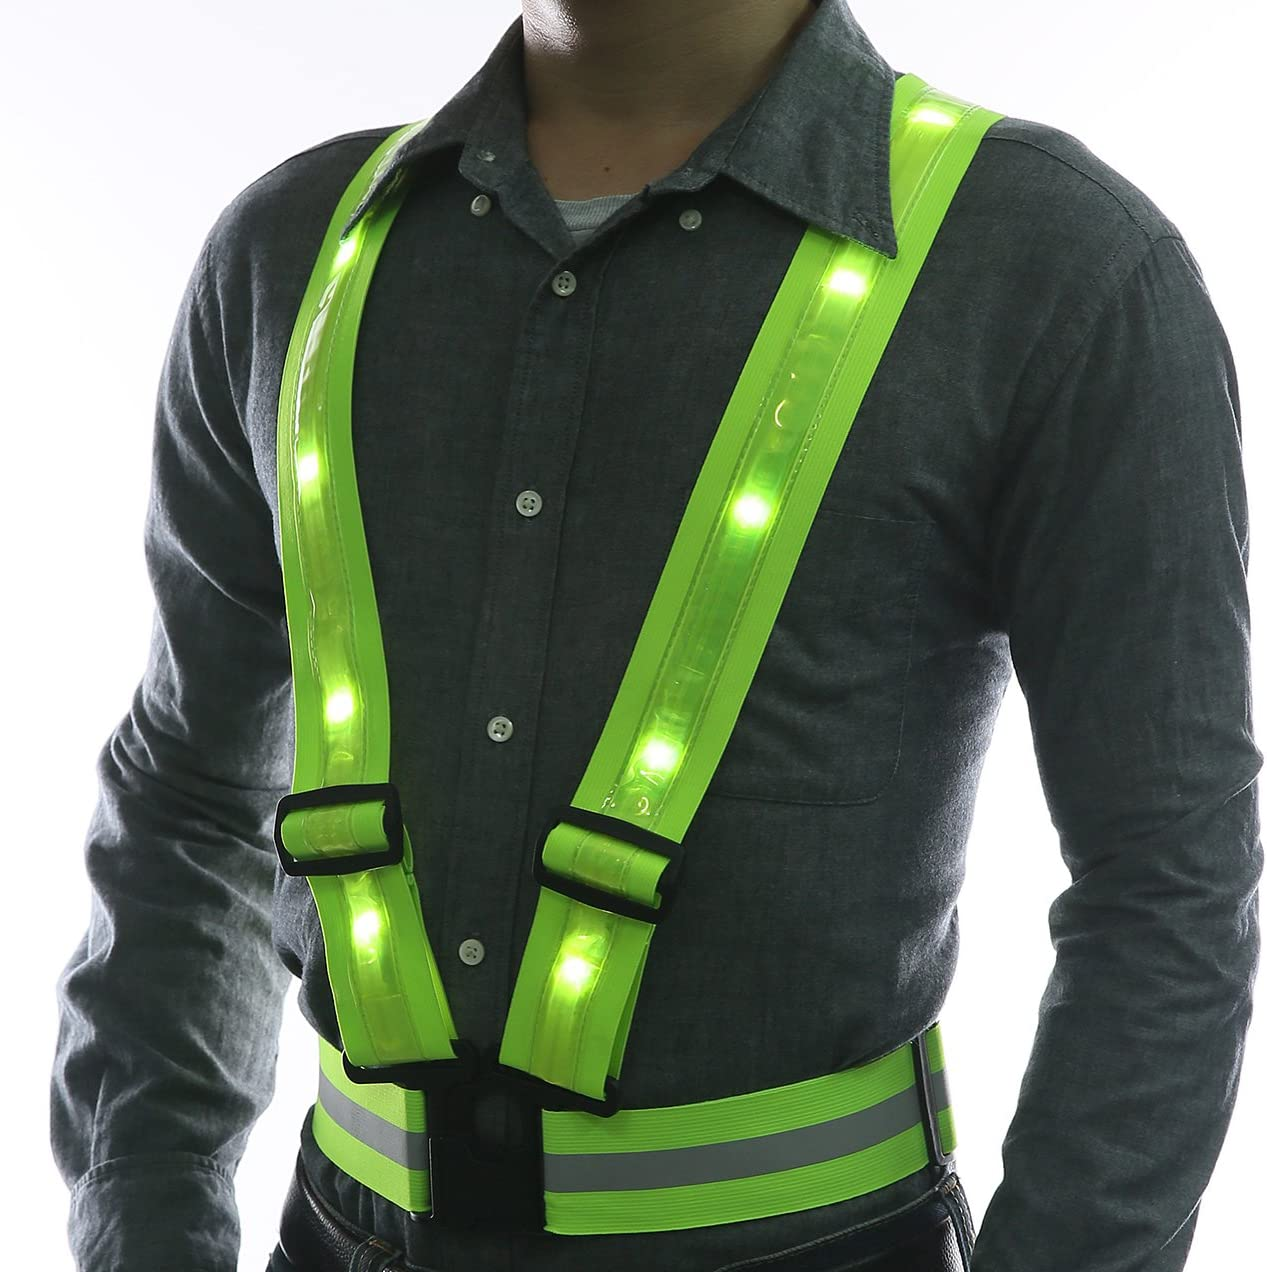 LED Reflective Safety Vest by Glowseen-USB Rechargeable-High Visibility with Reflective Stripes for Outdoor Activities Vest-Green